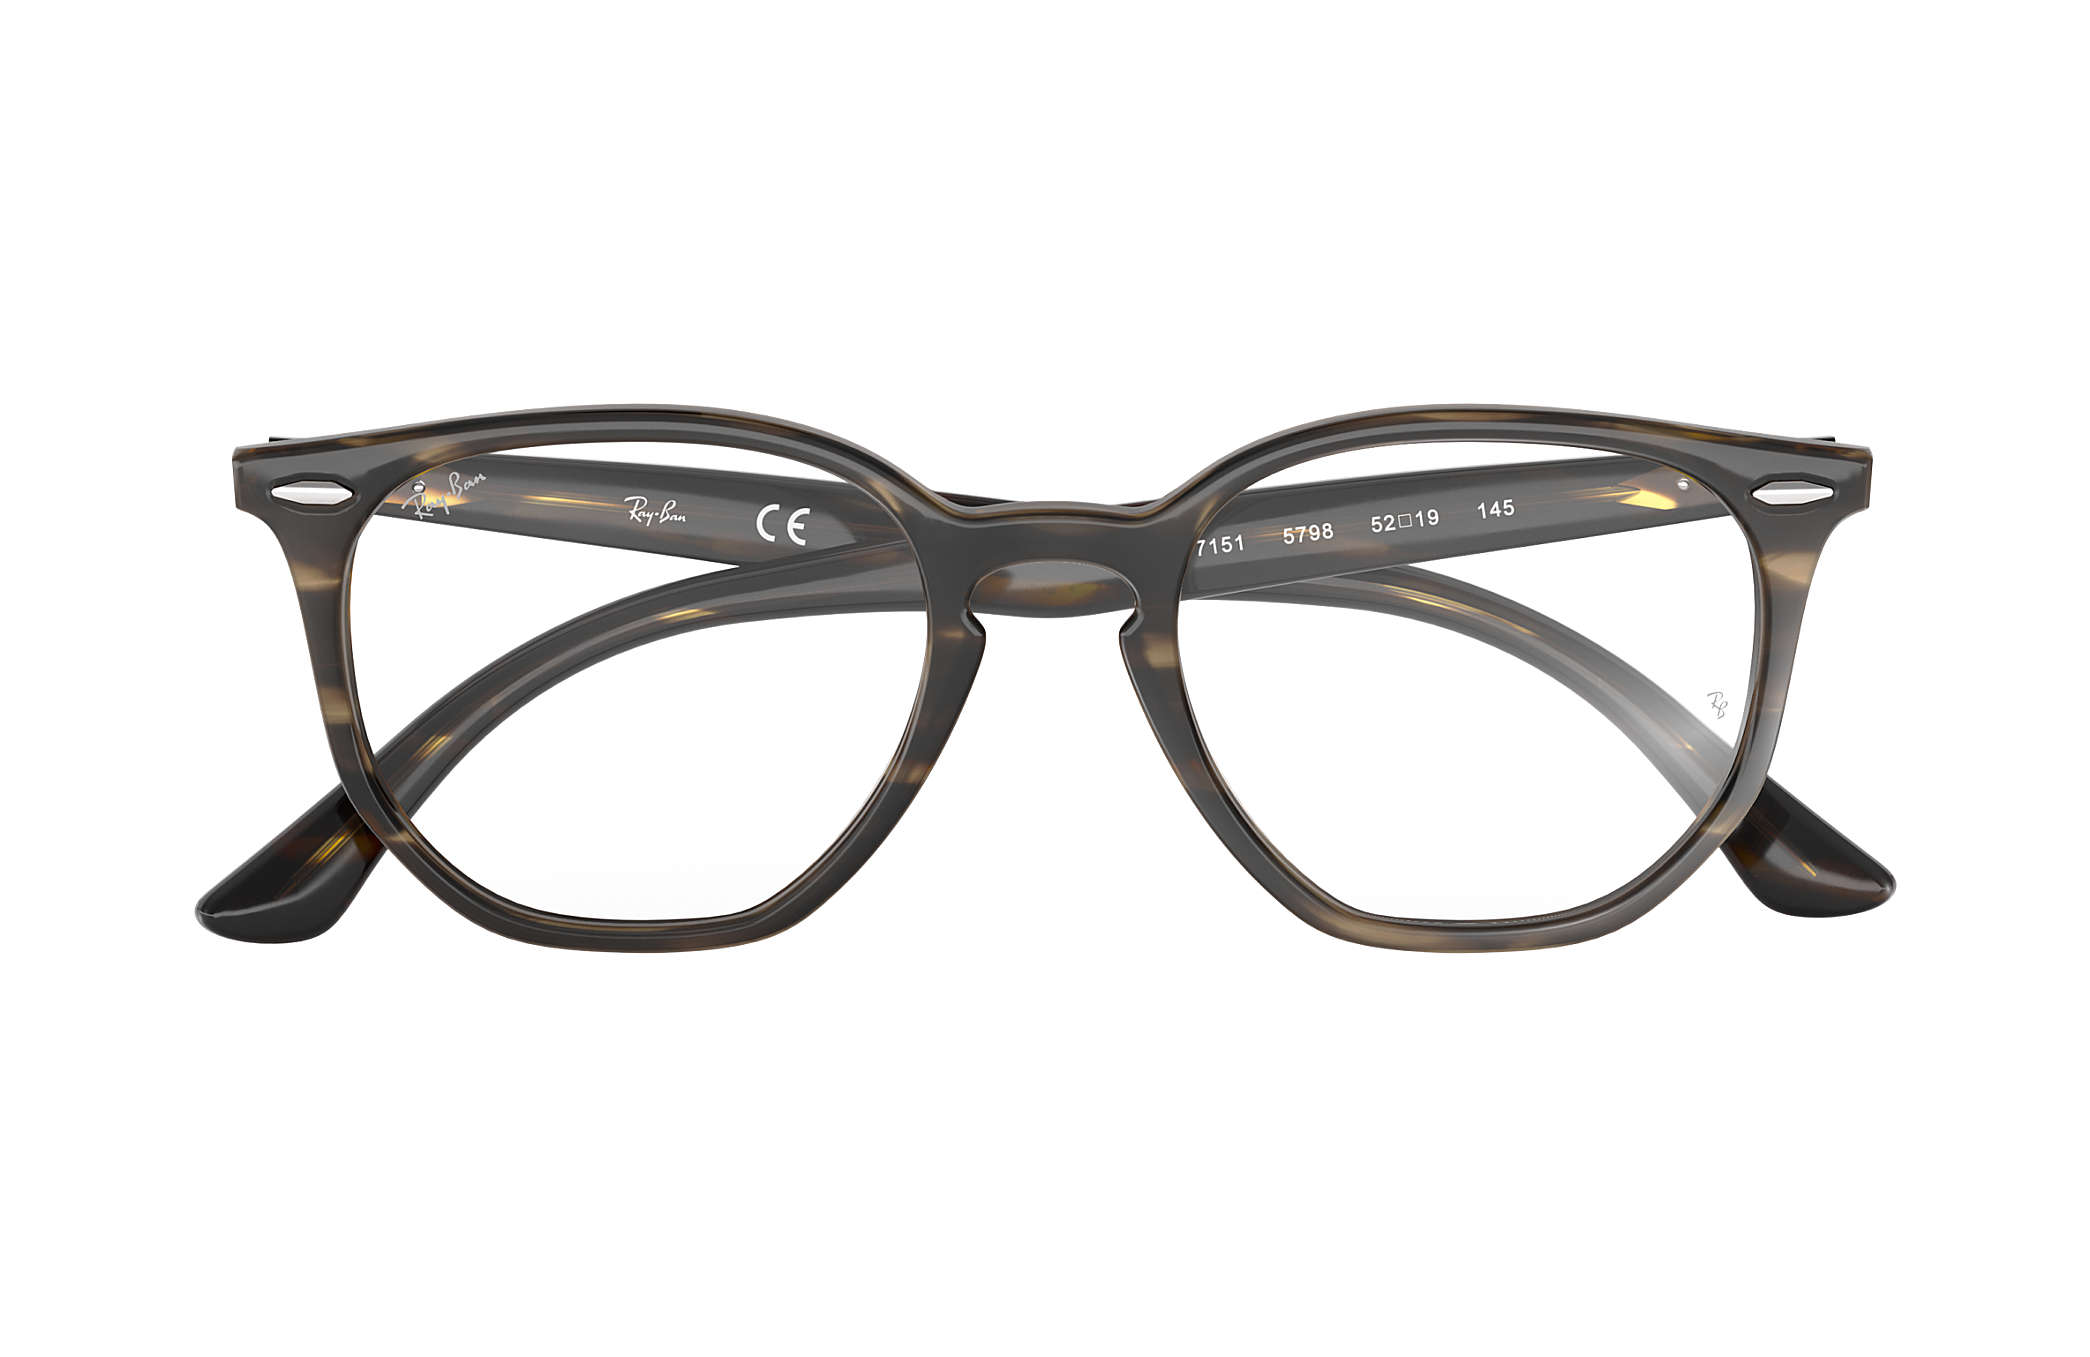 6376eef3560 Ray-Ban eyeglasses Hexagonal Optics RB7151 Tortoise - Acetate ...